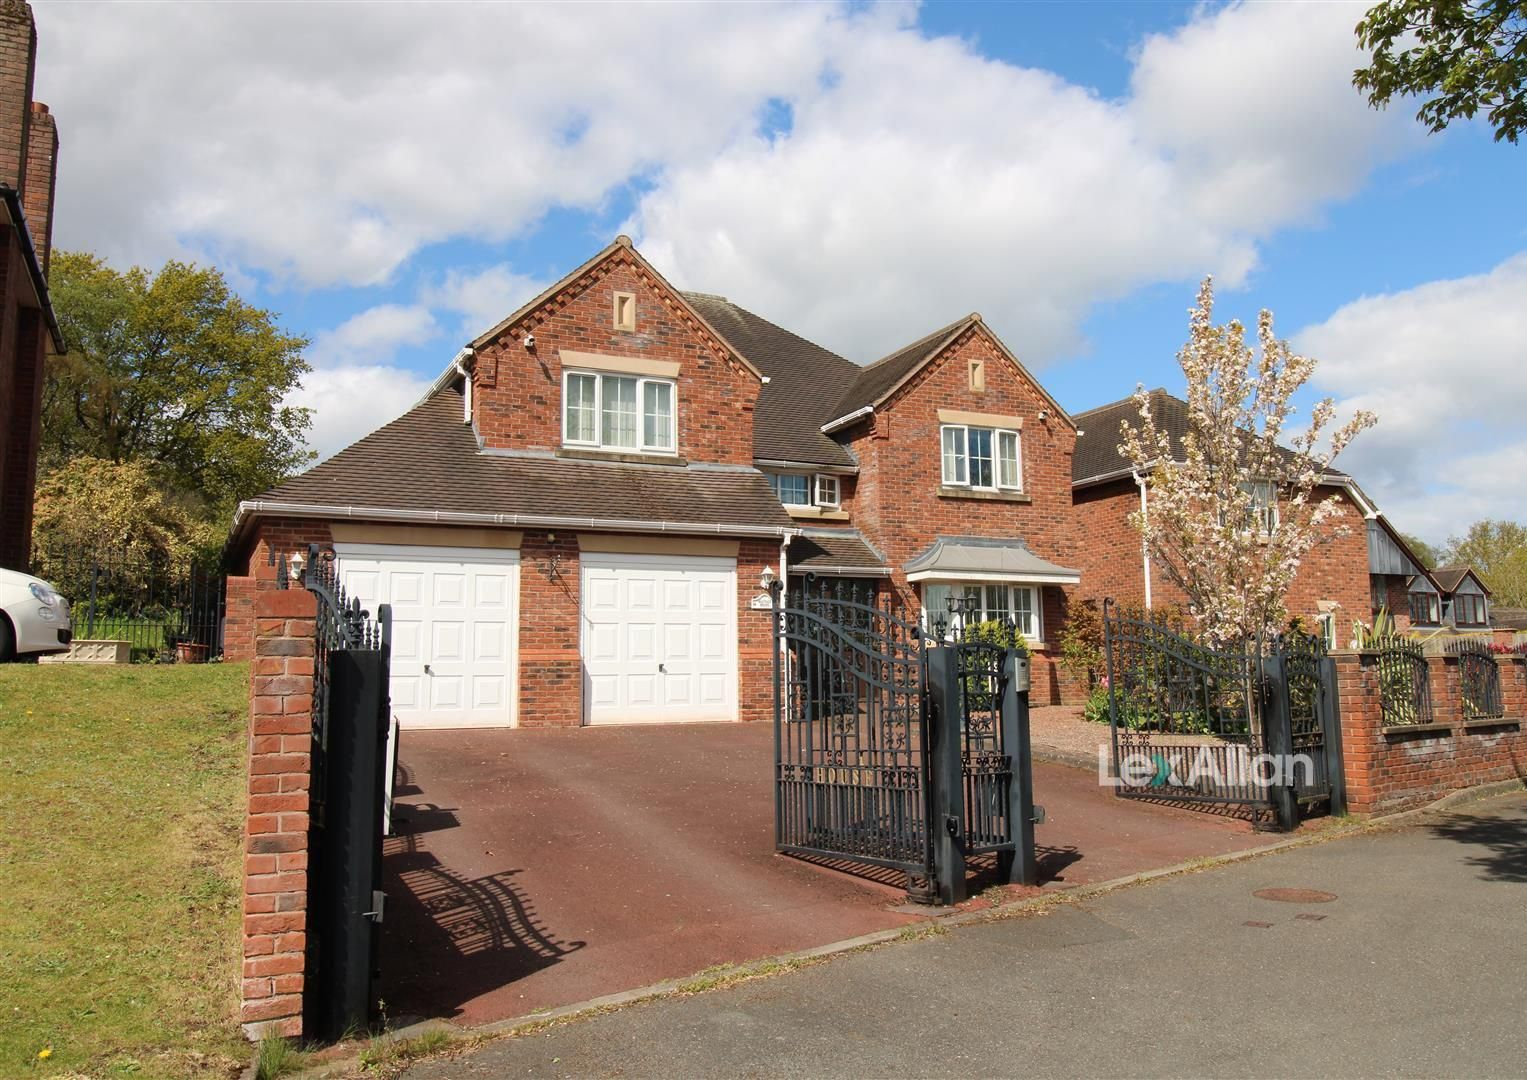 5 bed detached for sale in Stourton, DY7